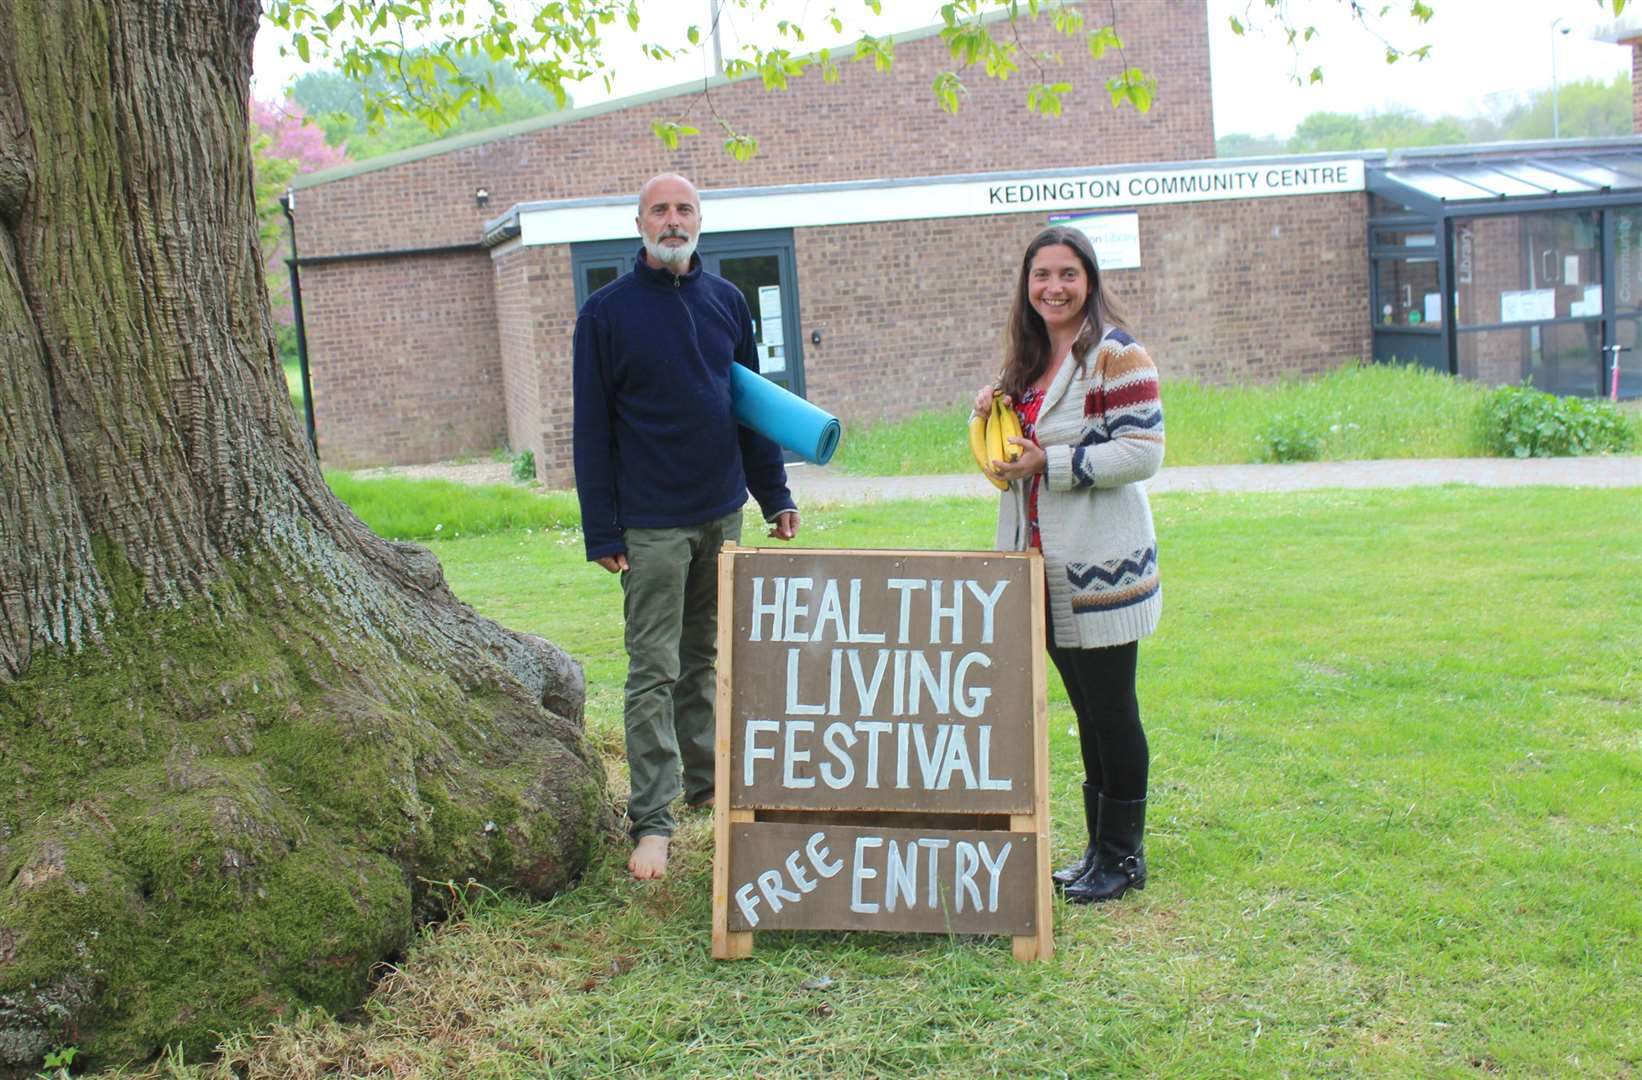 Healthy Living Festival organisers Giles and Juliette Bryant outside Kedington Community Centre. contributed picture (10910356)